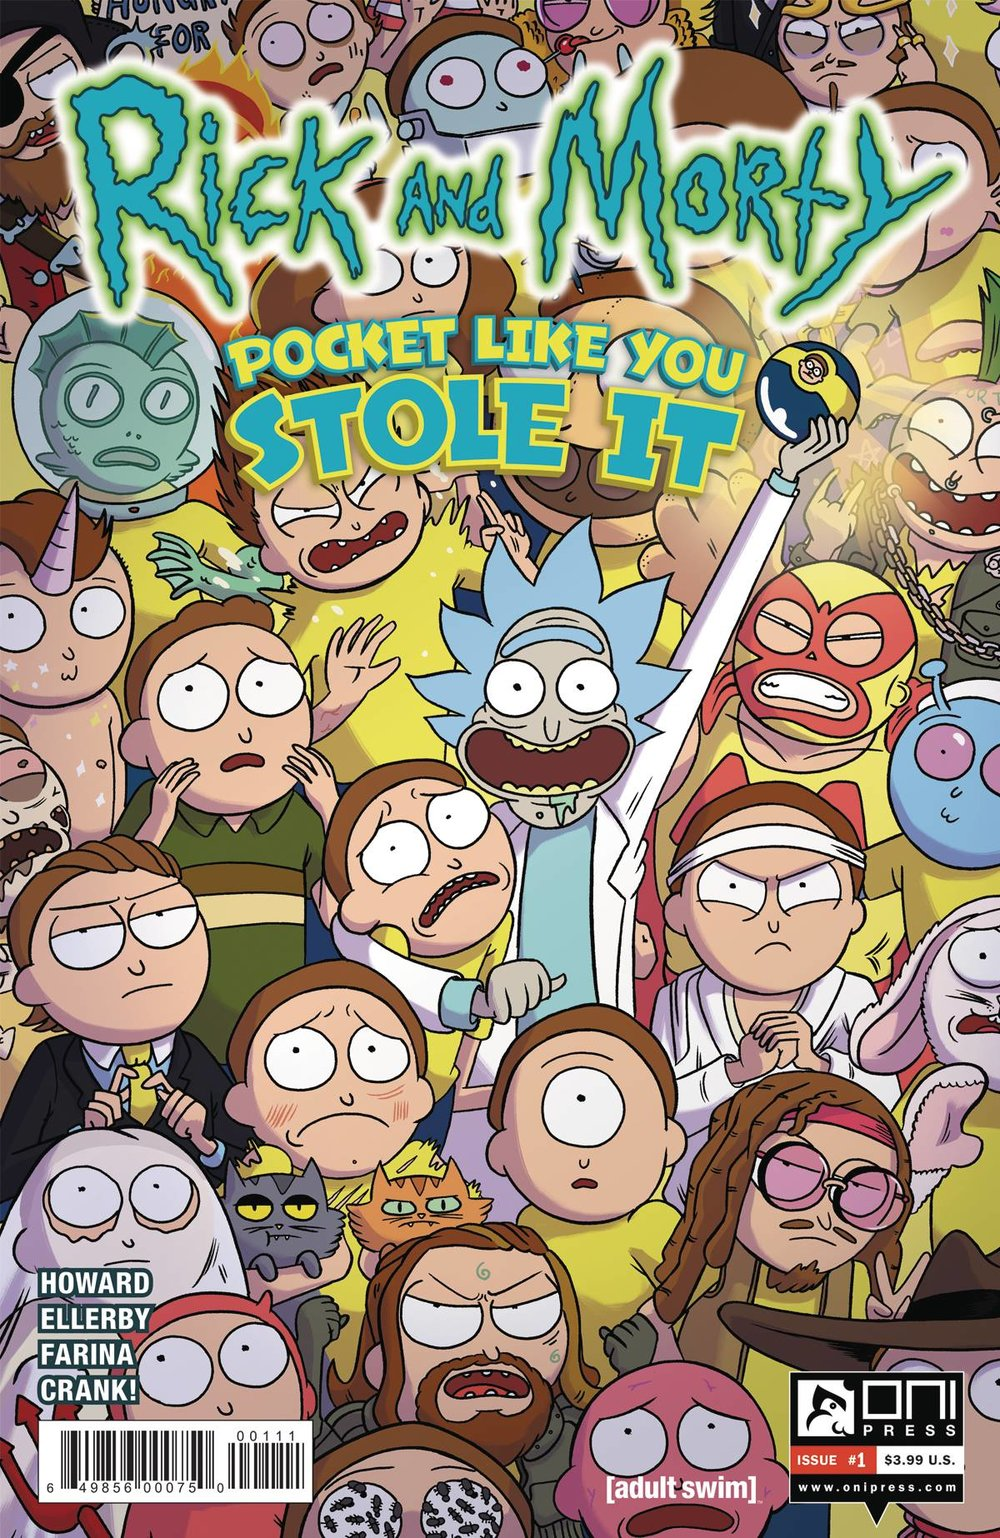 RICK & MORTY POCKET LIKE YOU STOLE IT 1 of 5.jpg